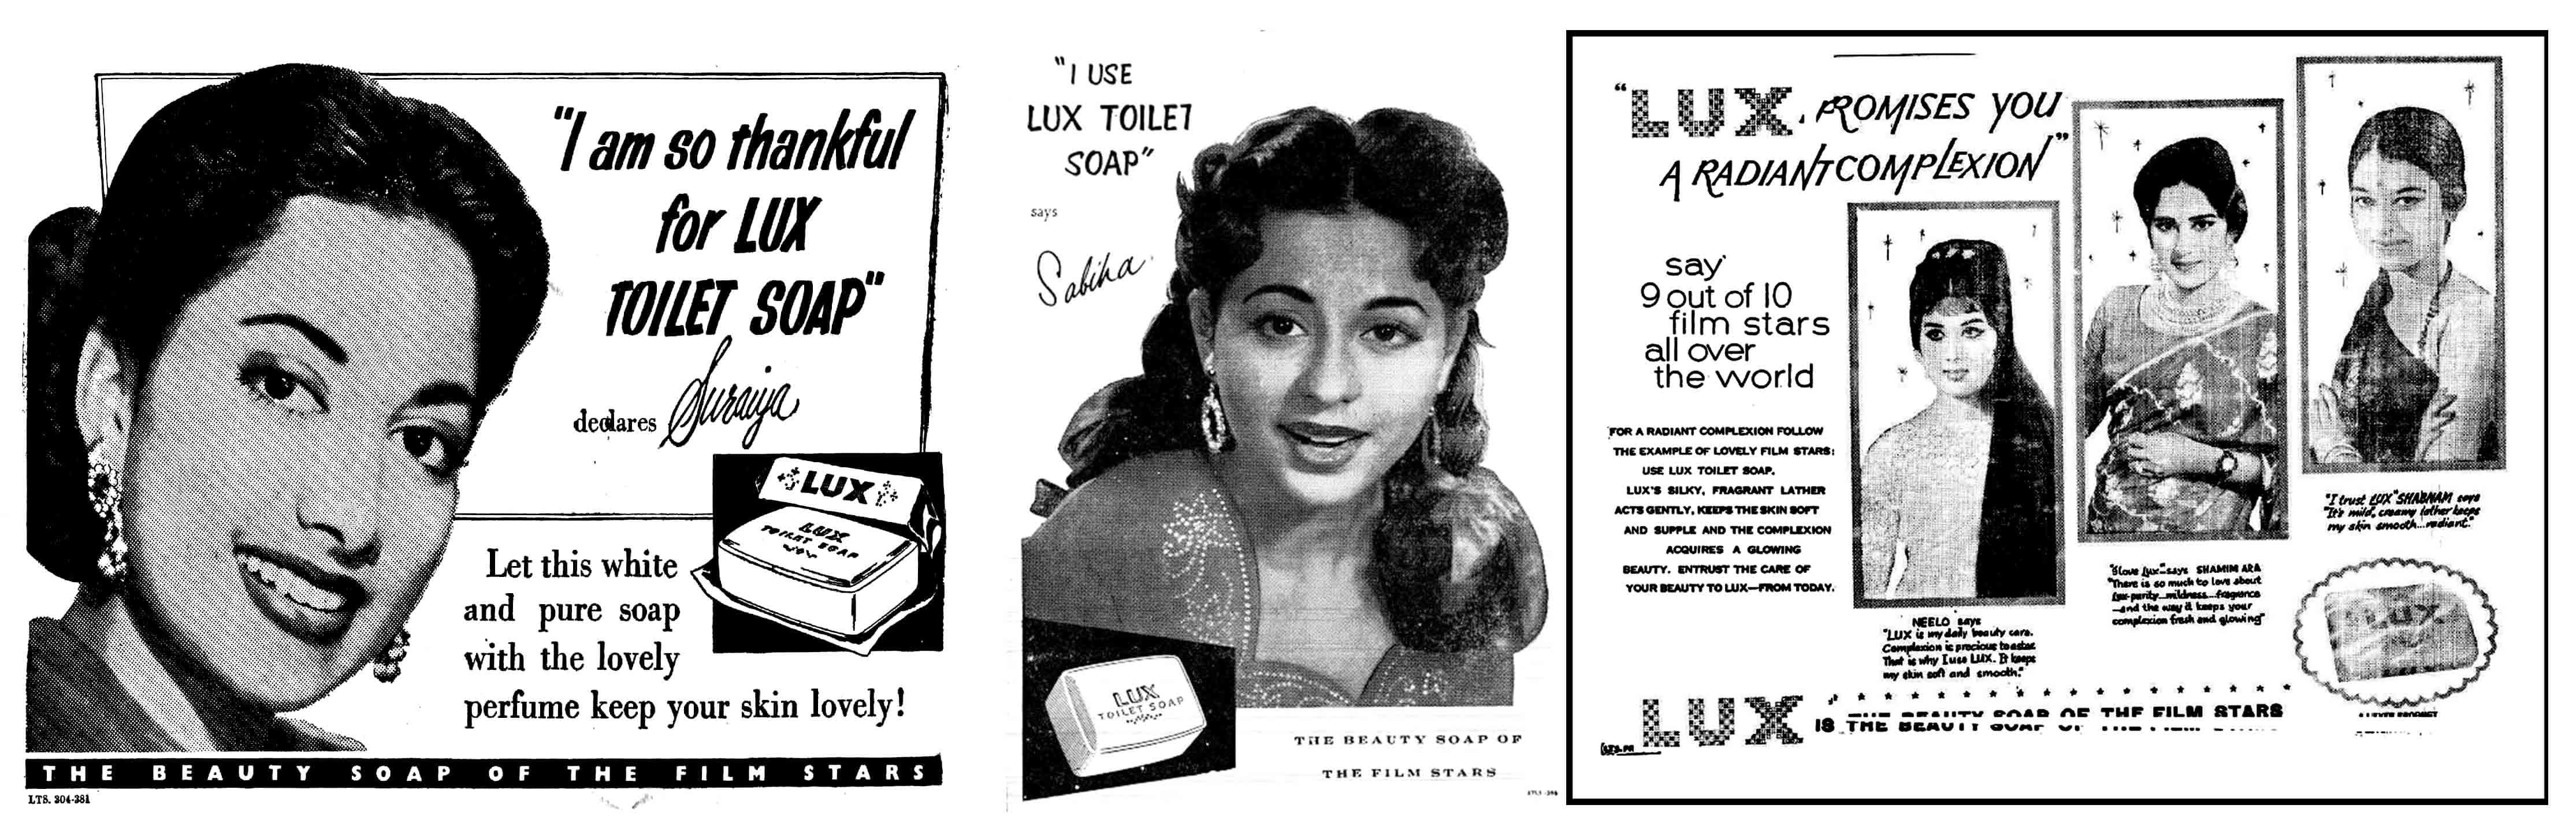 Lux ads in 1951, 1956 and 1964